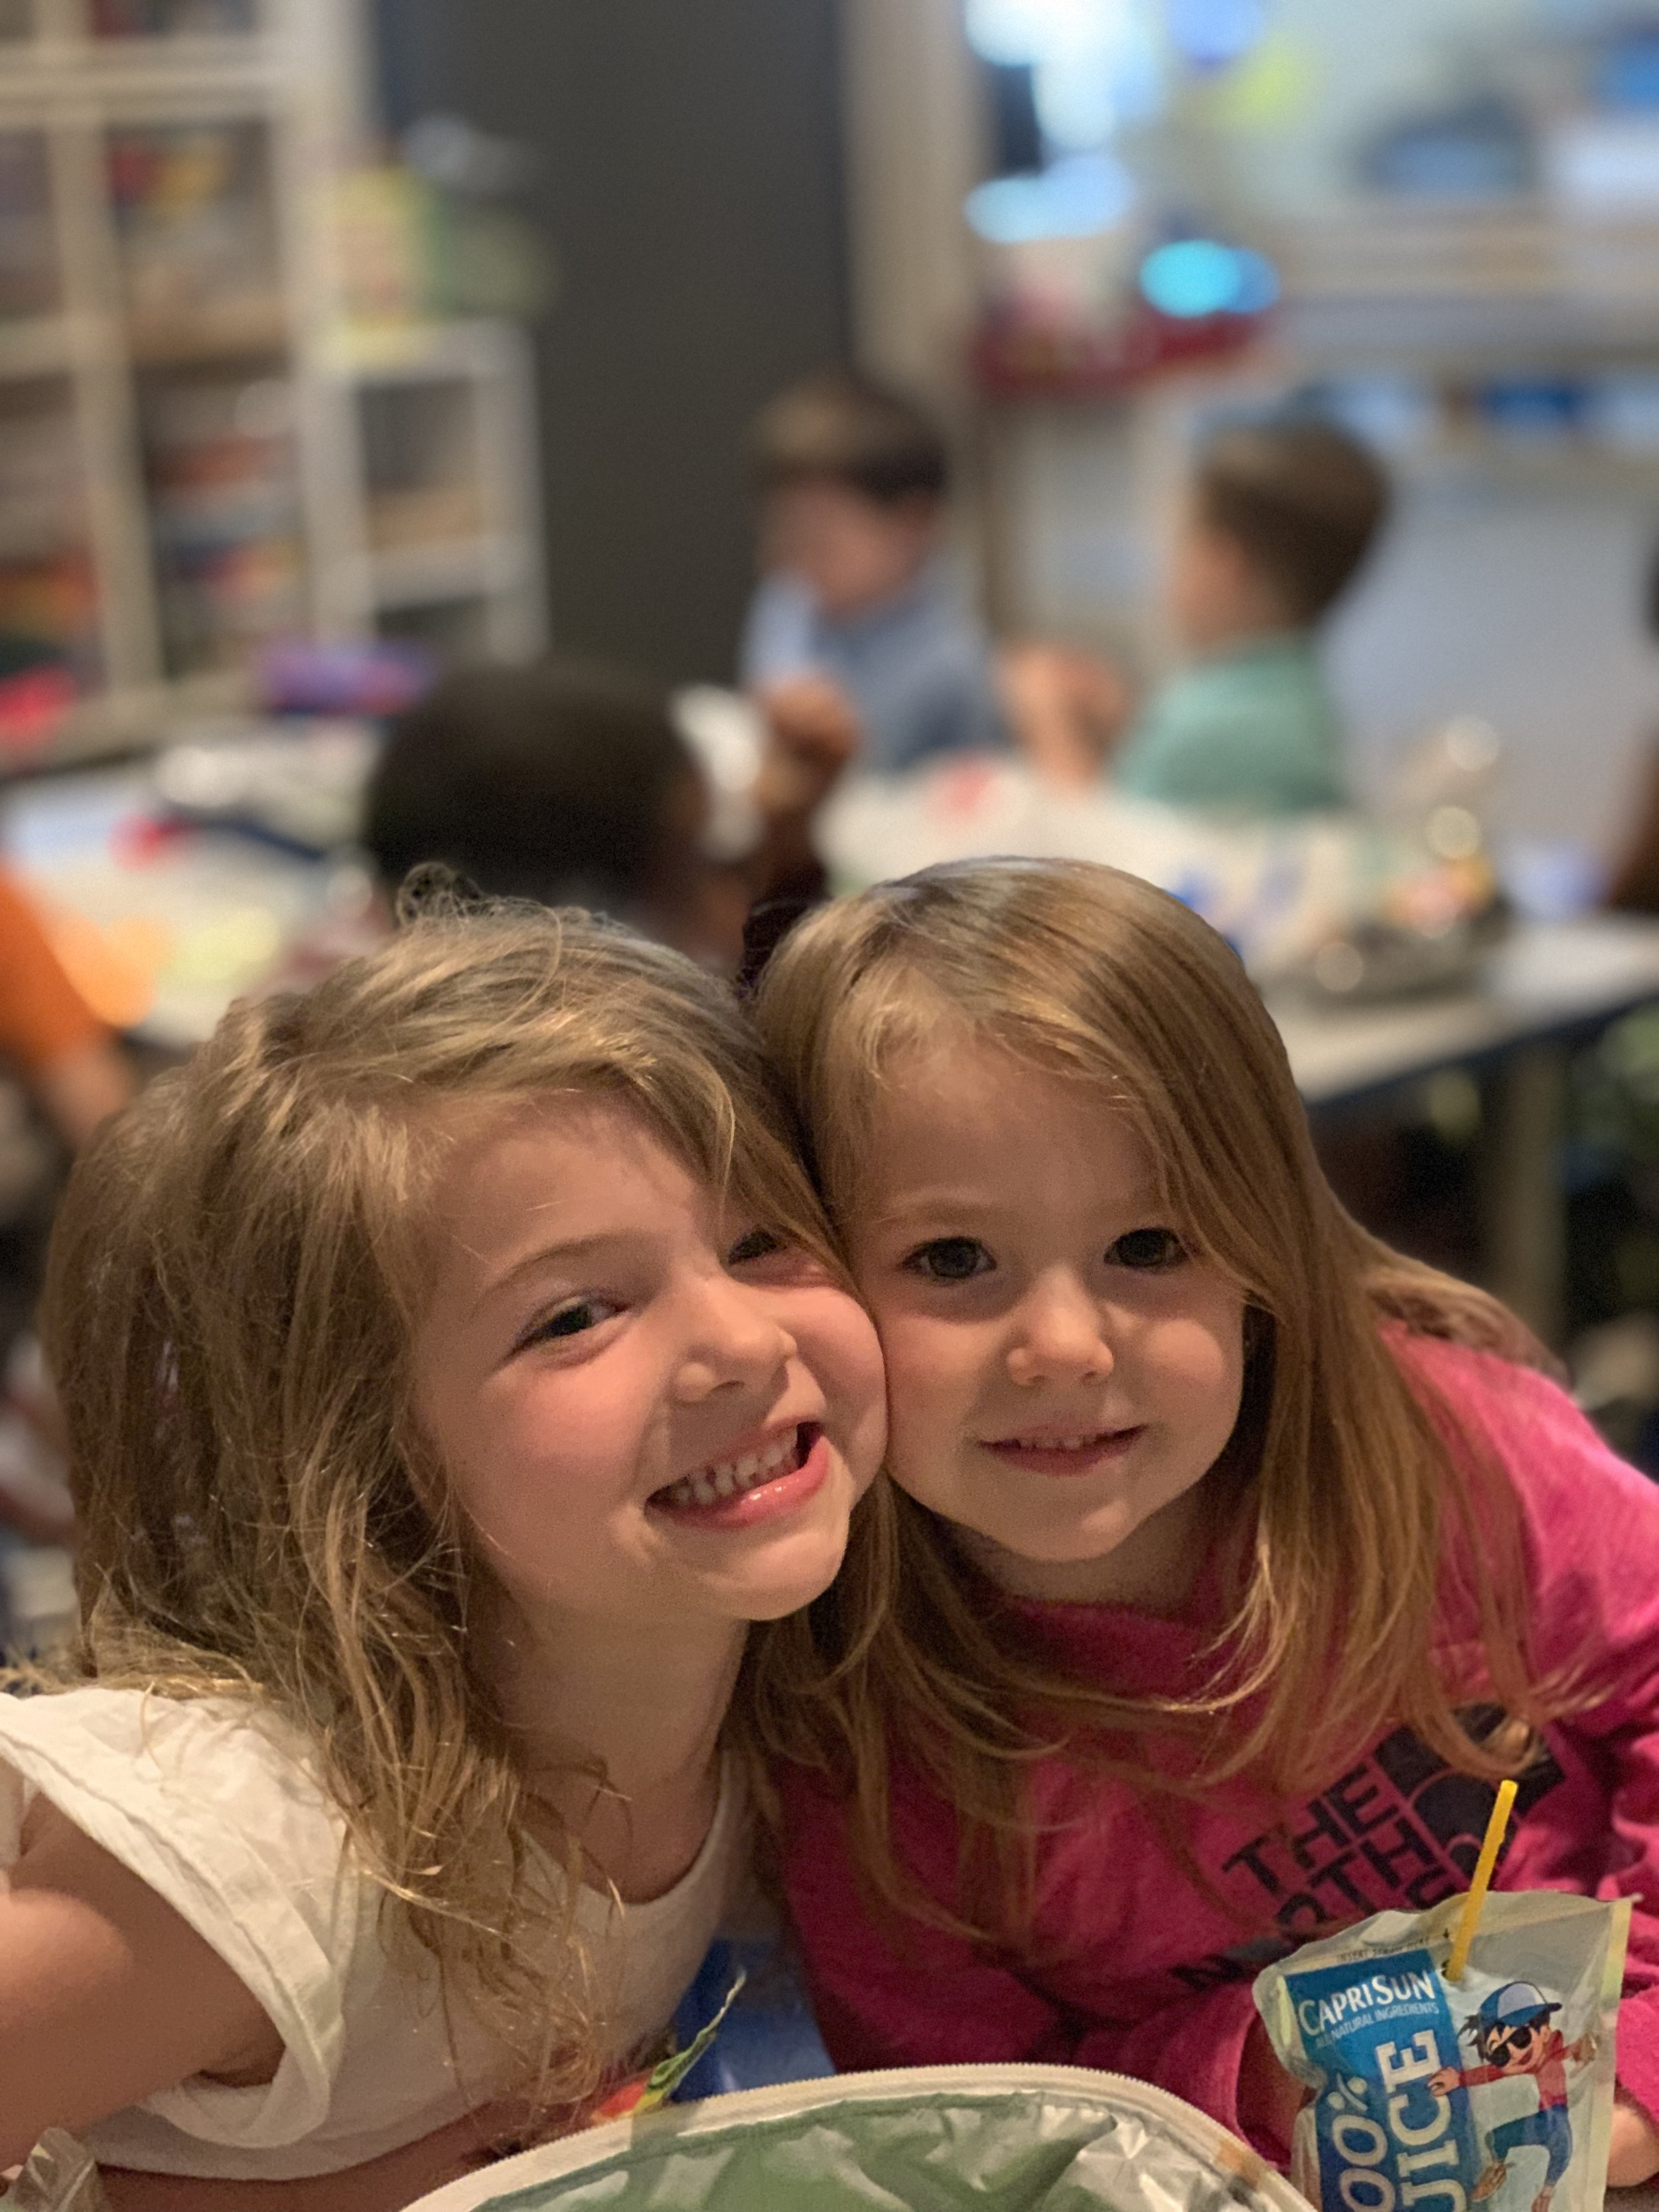 CityHope Pre - K - Friendships, Fun and Where Learning Begins!